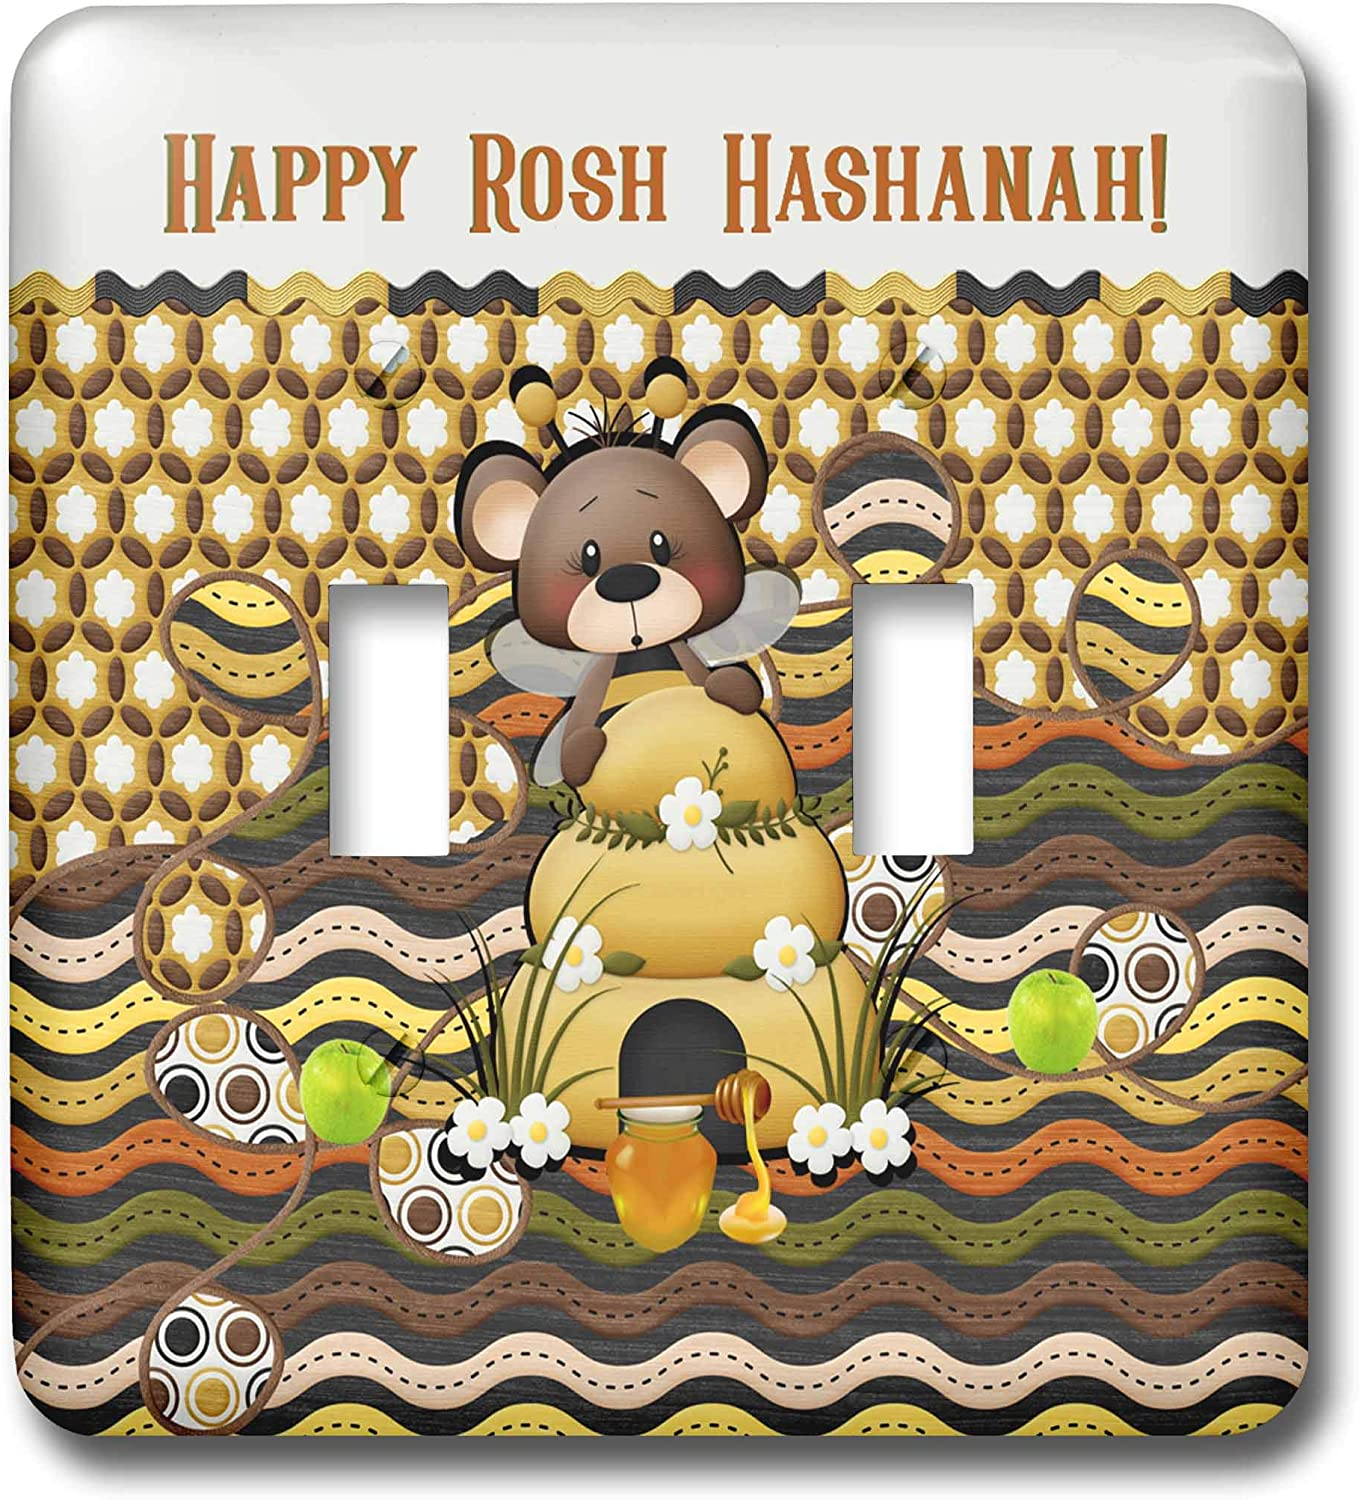 3dRose Beverly Turner Rosh Hashanah Design - Image of Rosh Hashanah Bee Bear, Honeycomb, Apples, Jar, and Bee Hive - double toggle switch (lsp_325238_2)